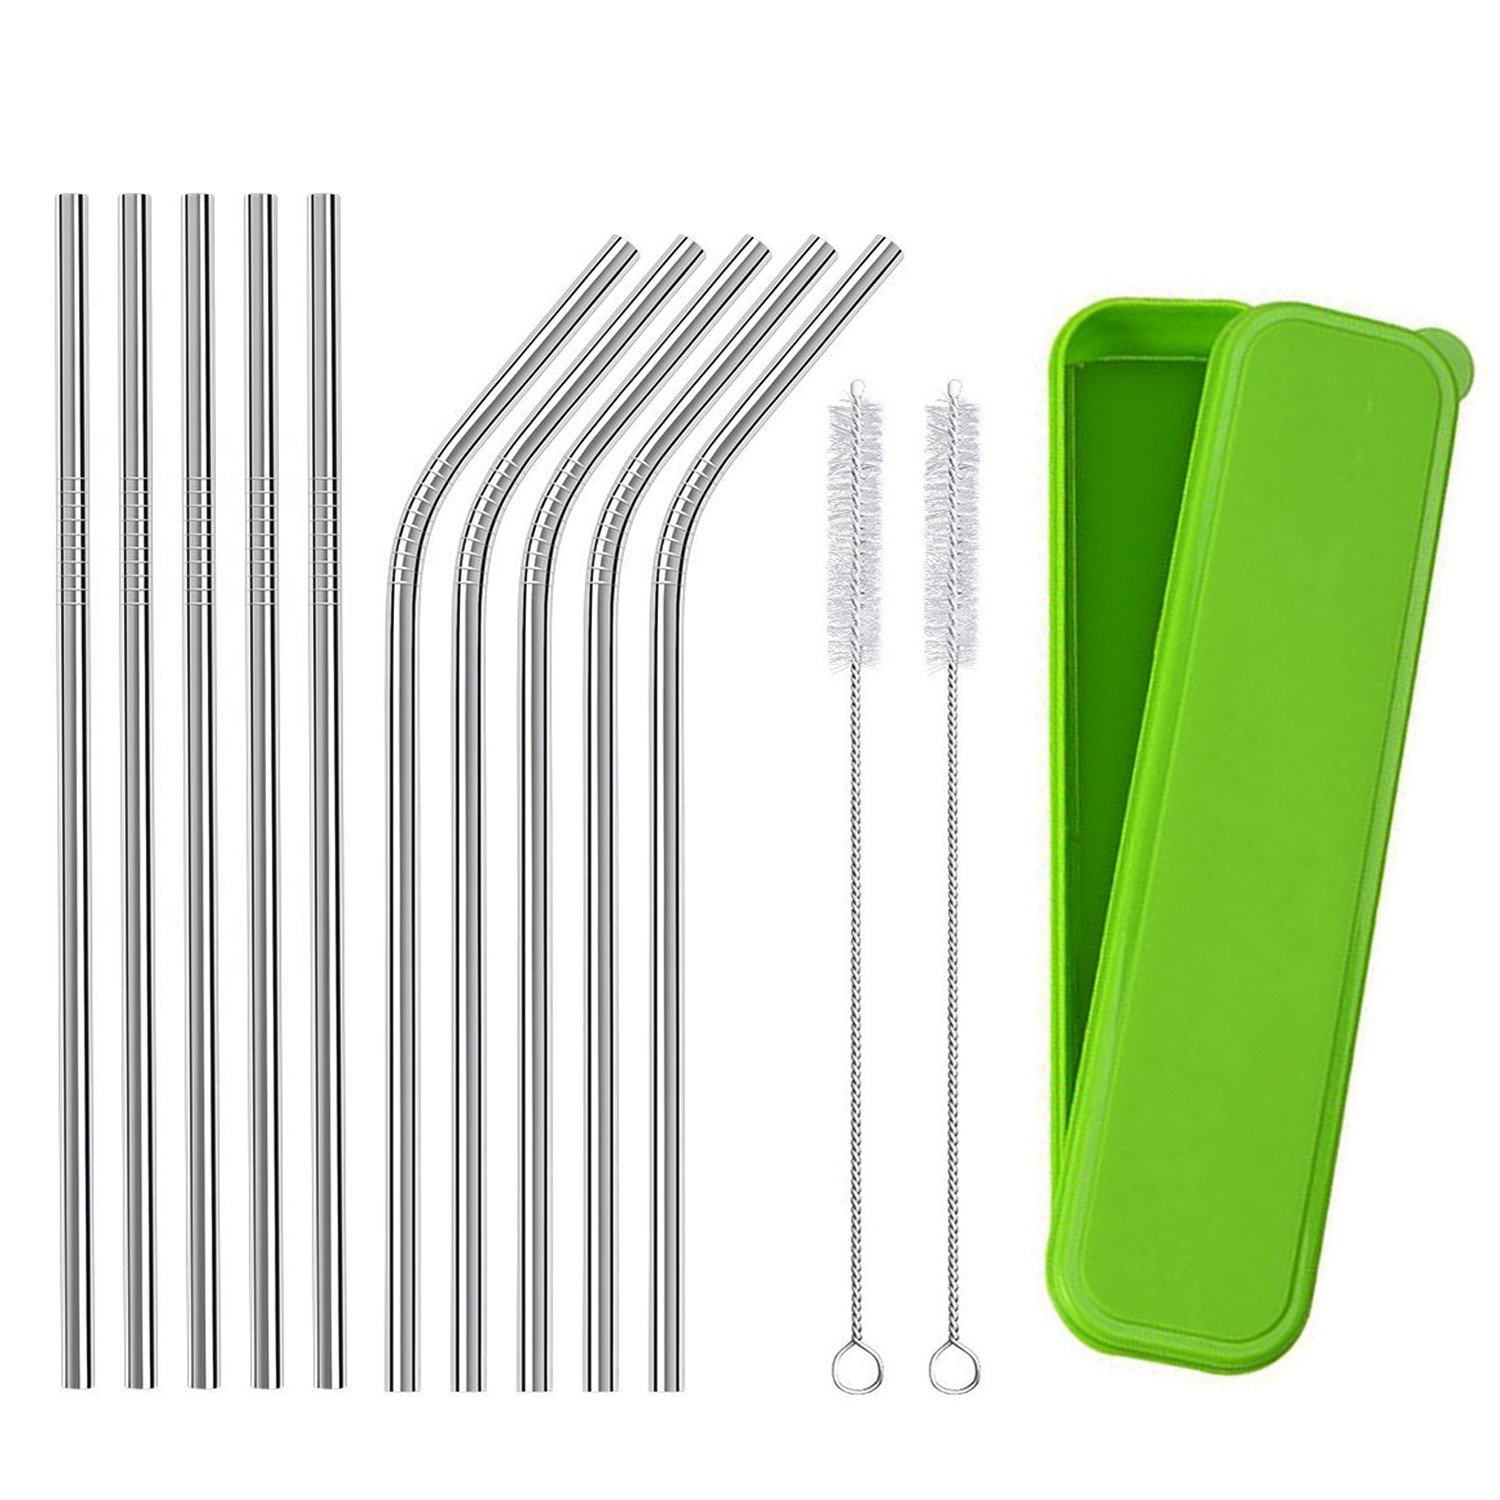 Stainless Steel Straws,Portable Storage Box Reusable Drinking Straws with Cleaning Brushes (5 Straight + 5 Bent + 2 Brushes)